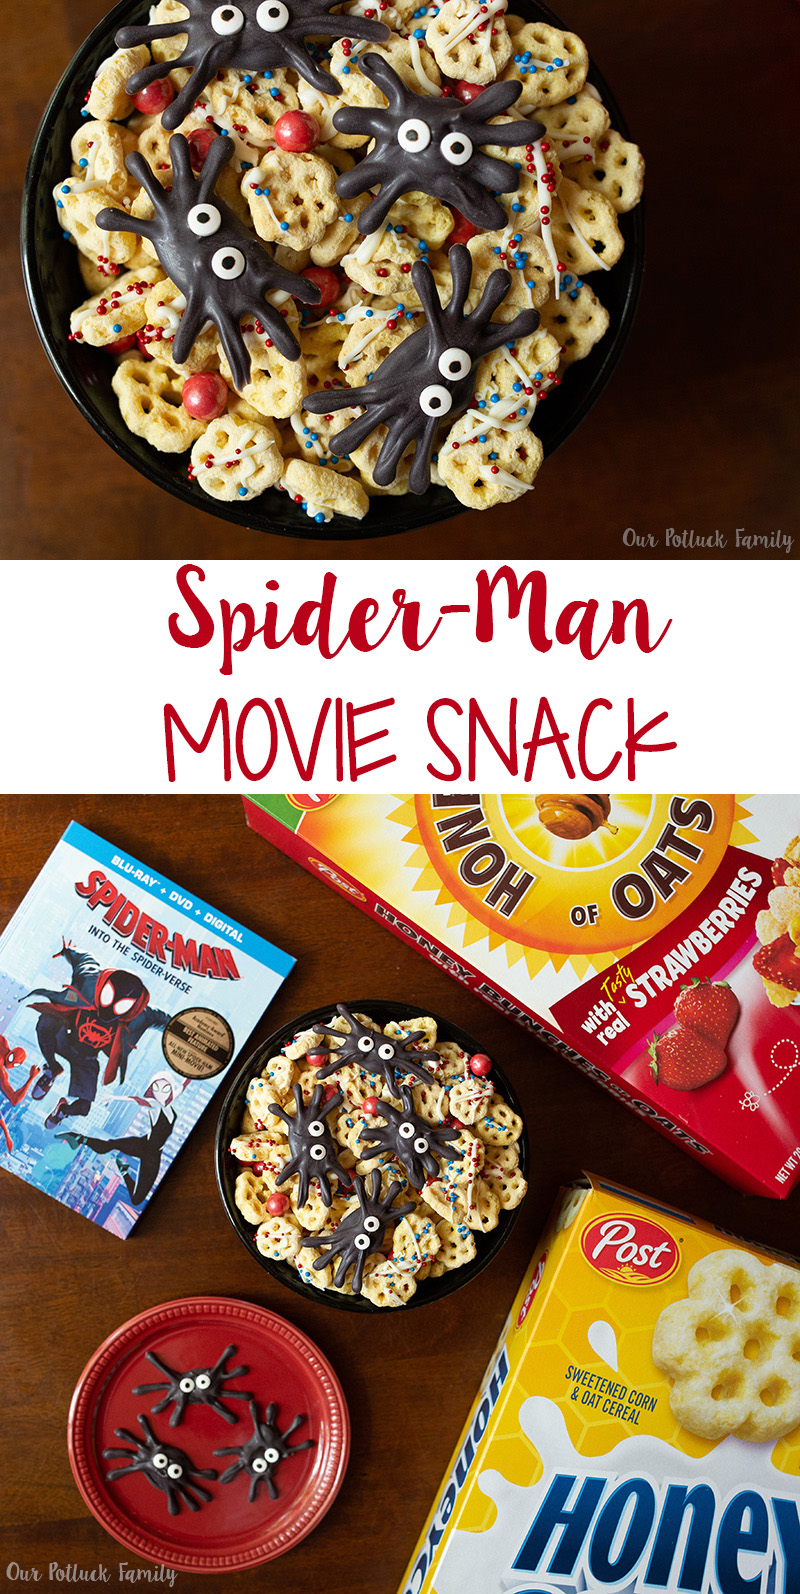 Spider-Man Movie Snacks